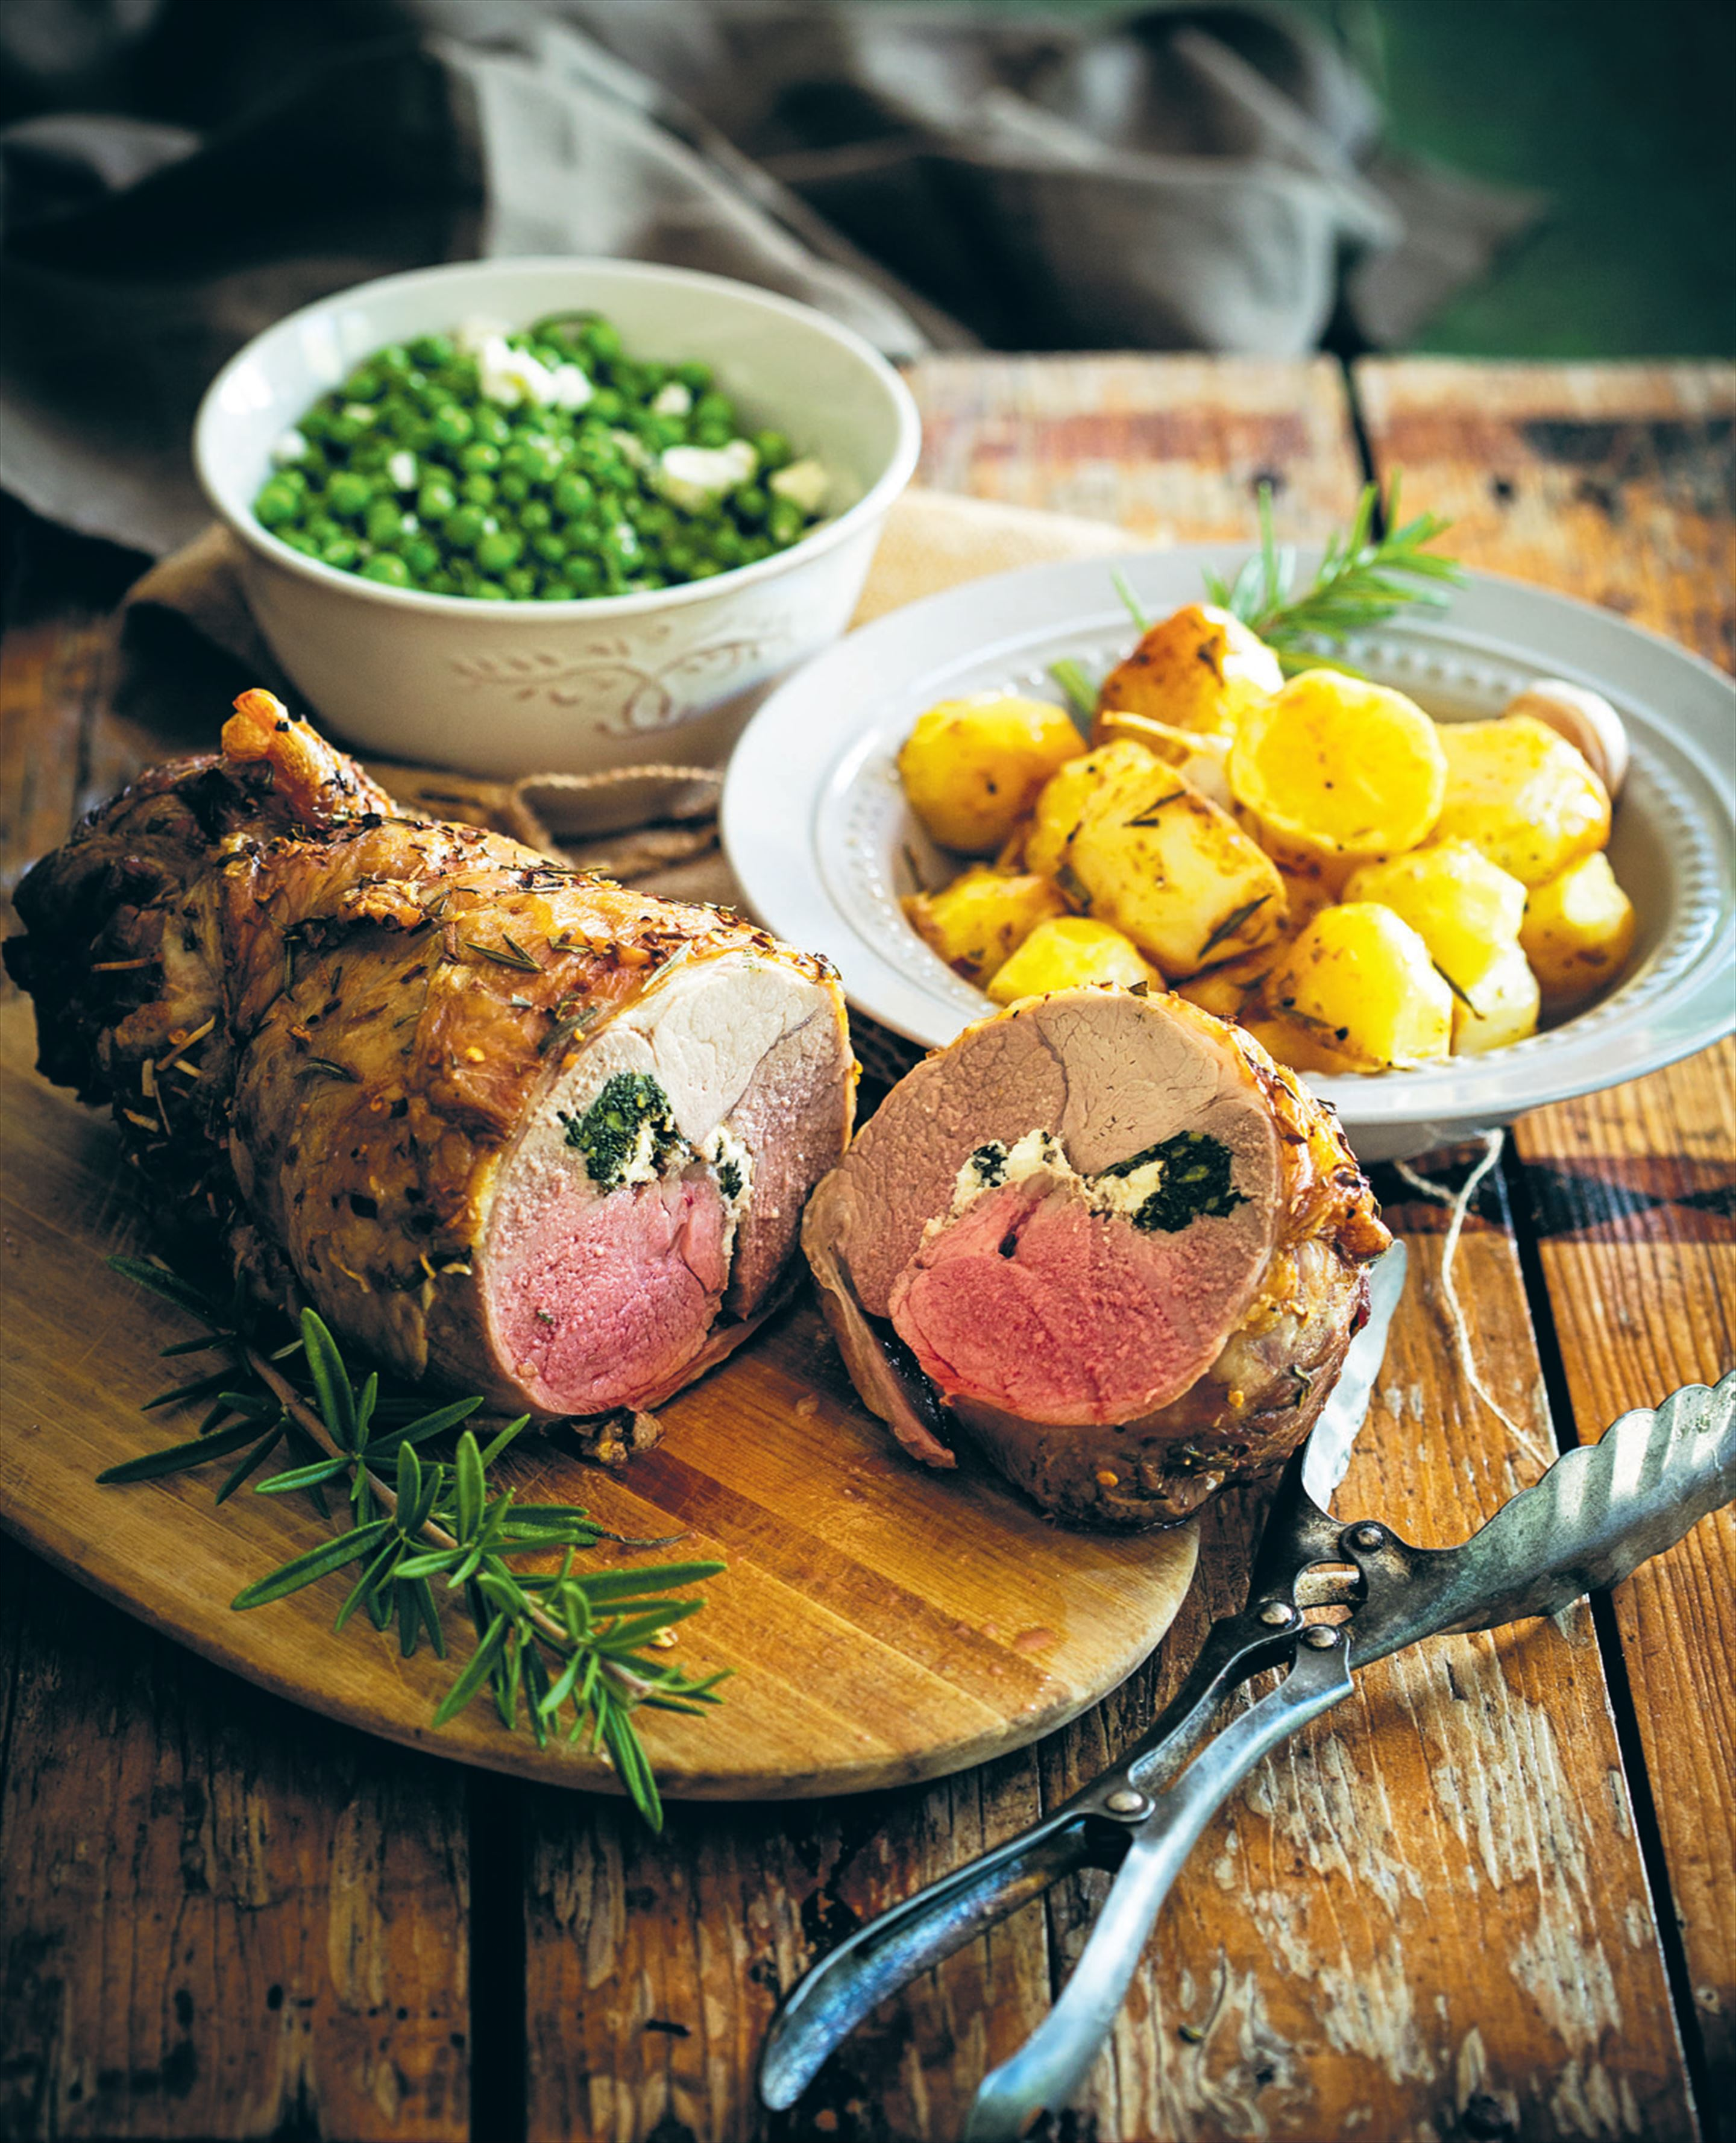 Kale and feta stuffed roast leg of lamb